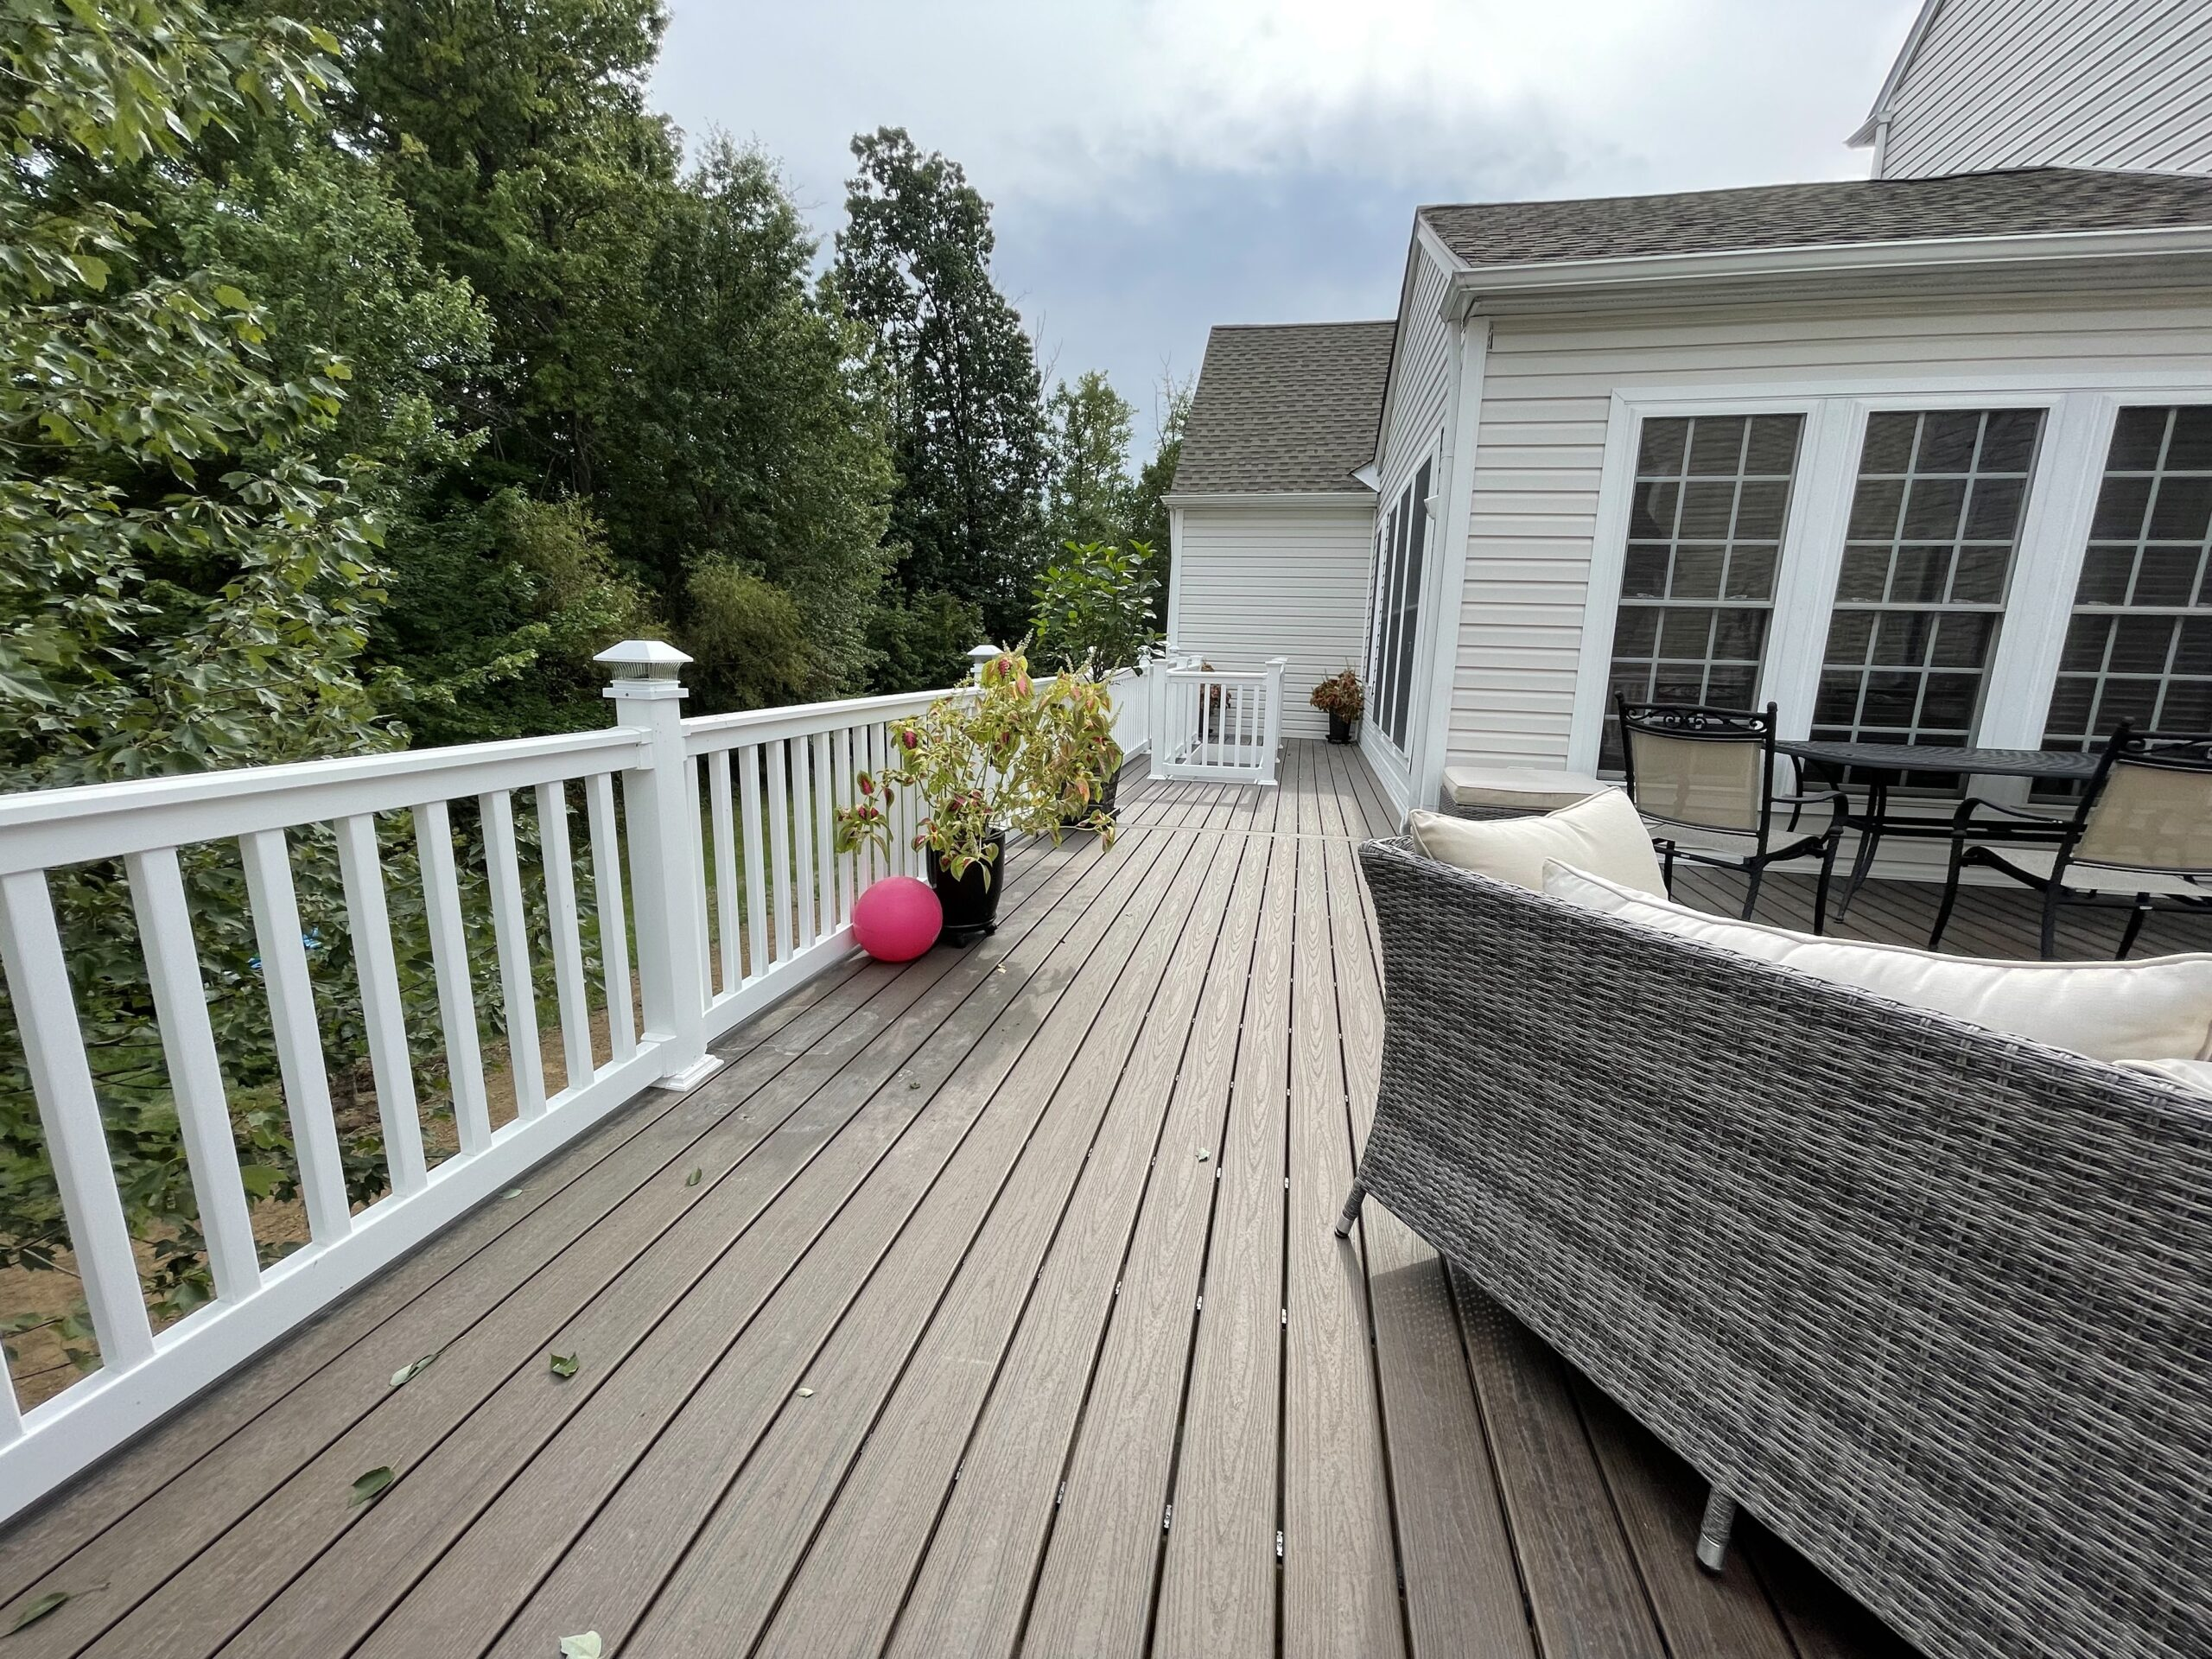 Residential Contractor For Decking Construction in Chester Springs Chester County PA